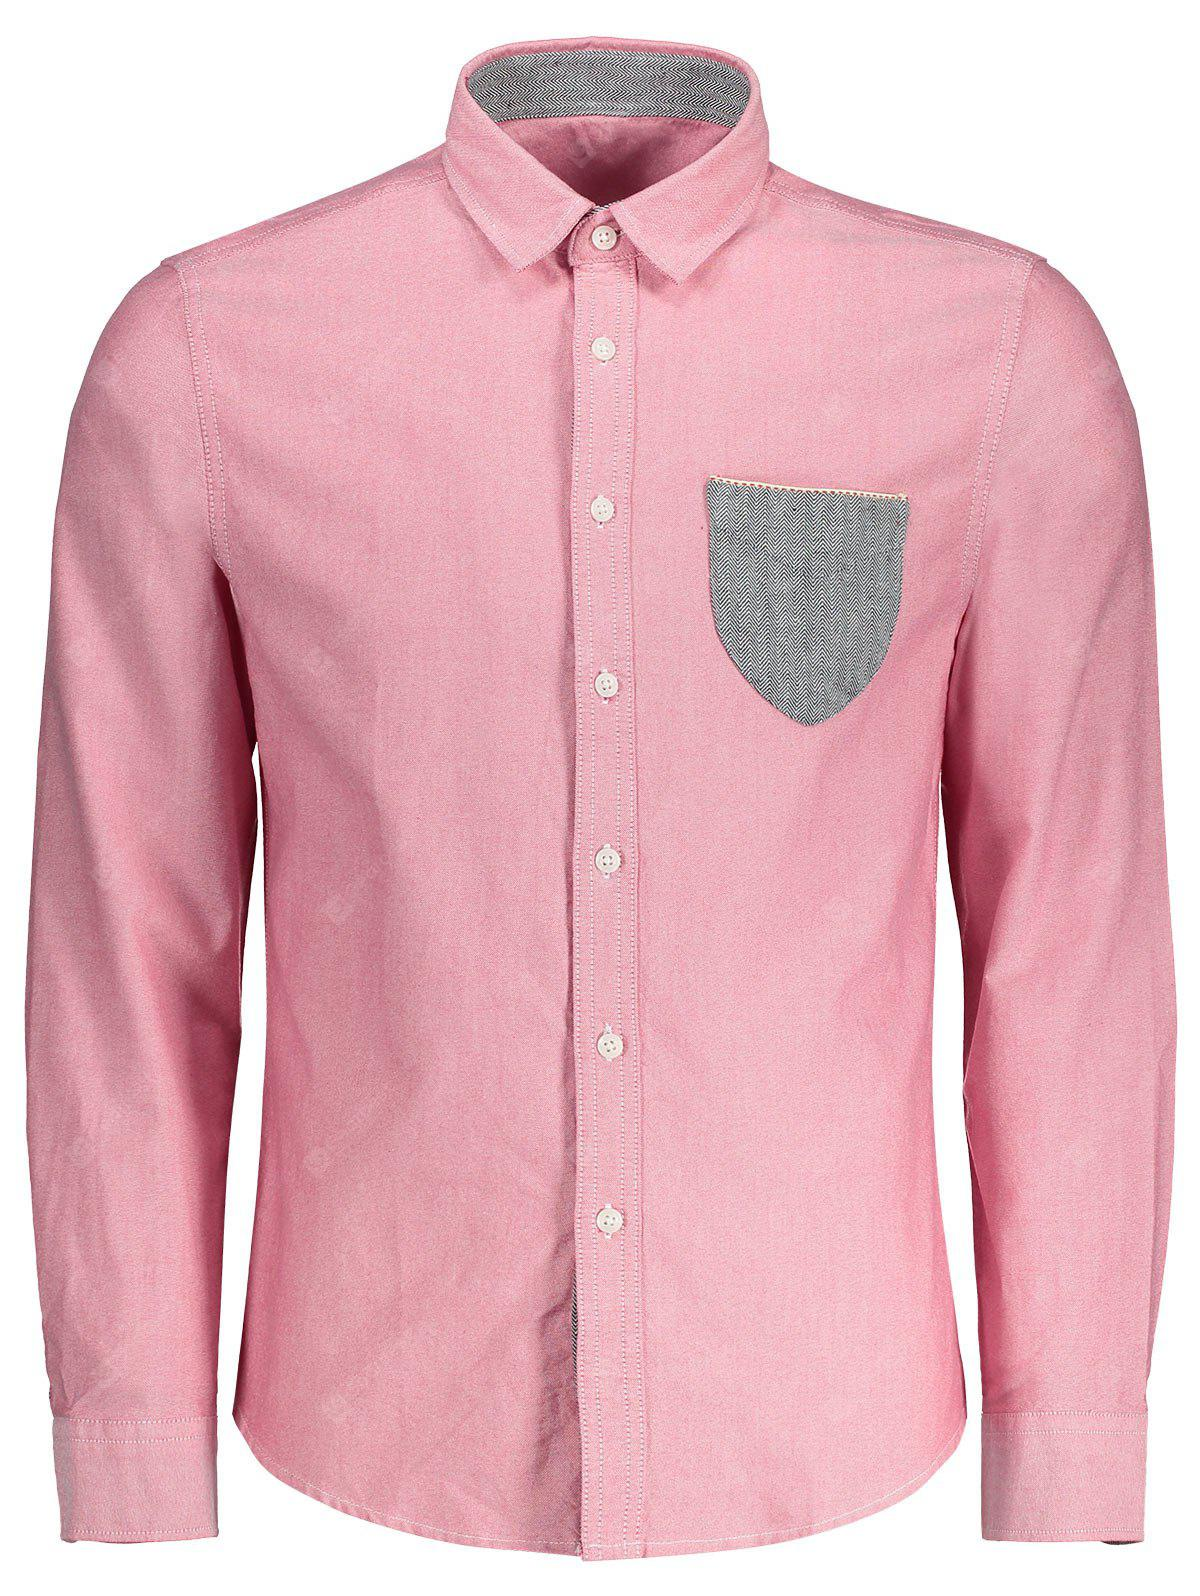 Pocket Button Up Shirt